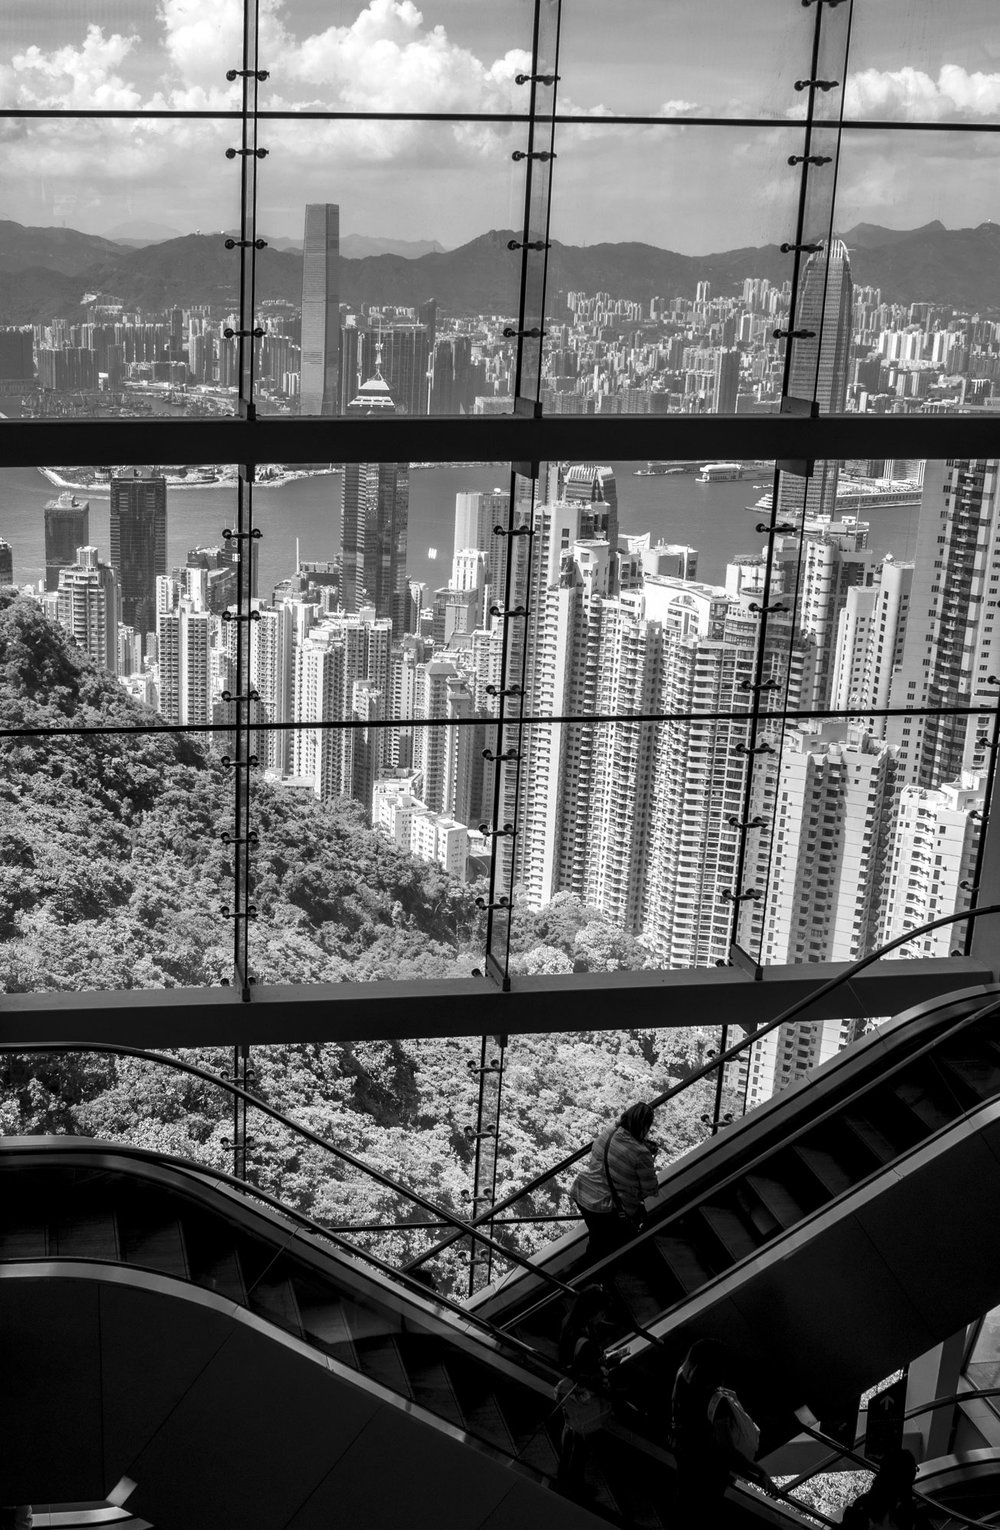 View from escalators in Victoria Peak shopping centre